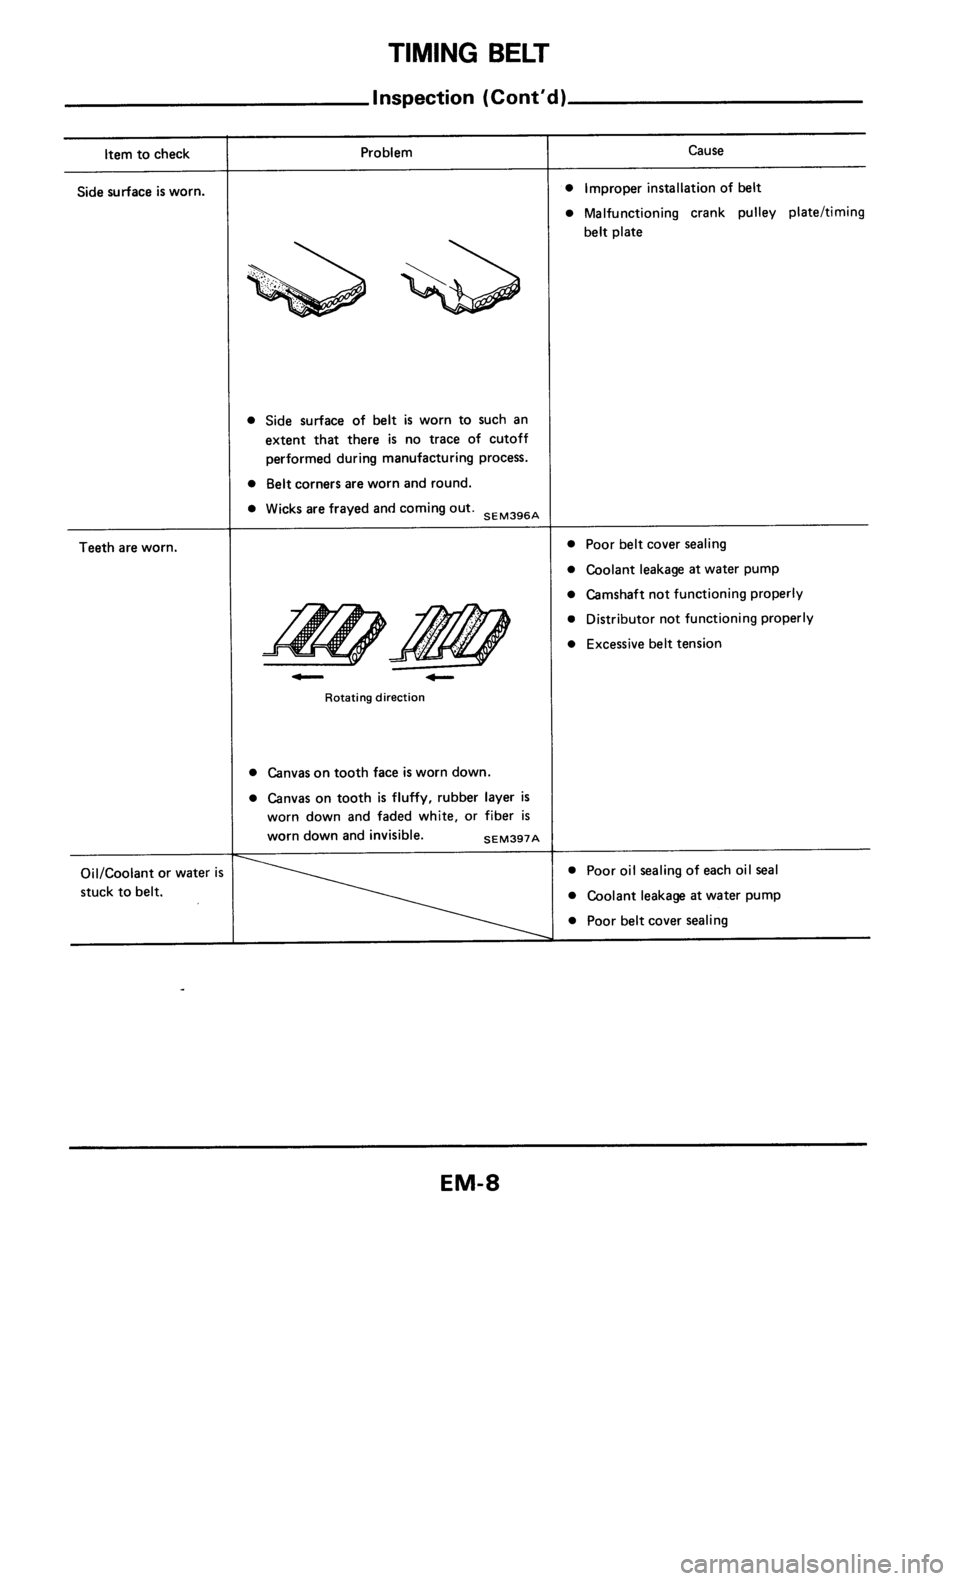 NISSAN 300ZX 1984 Z31 Engine Mechanical Workshop Manual, Page 8